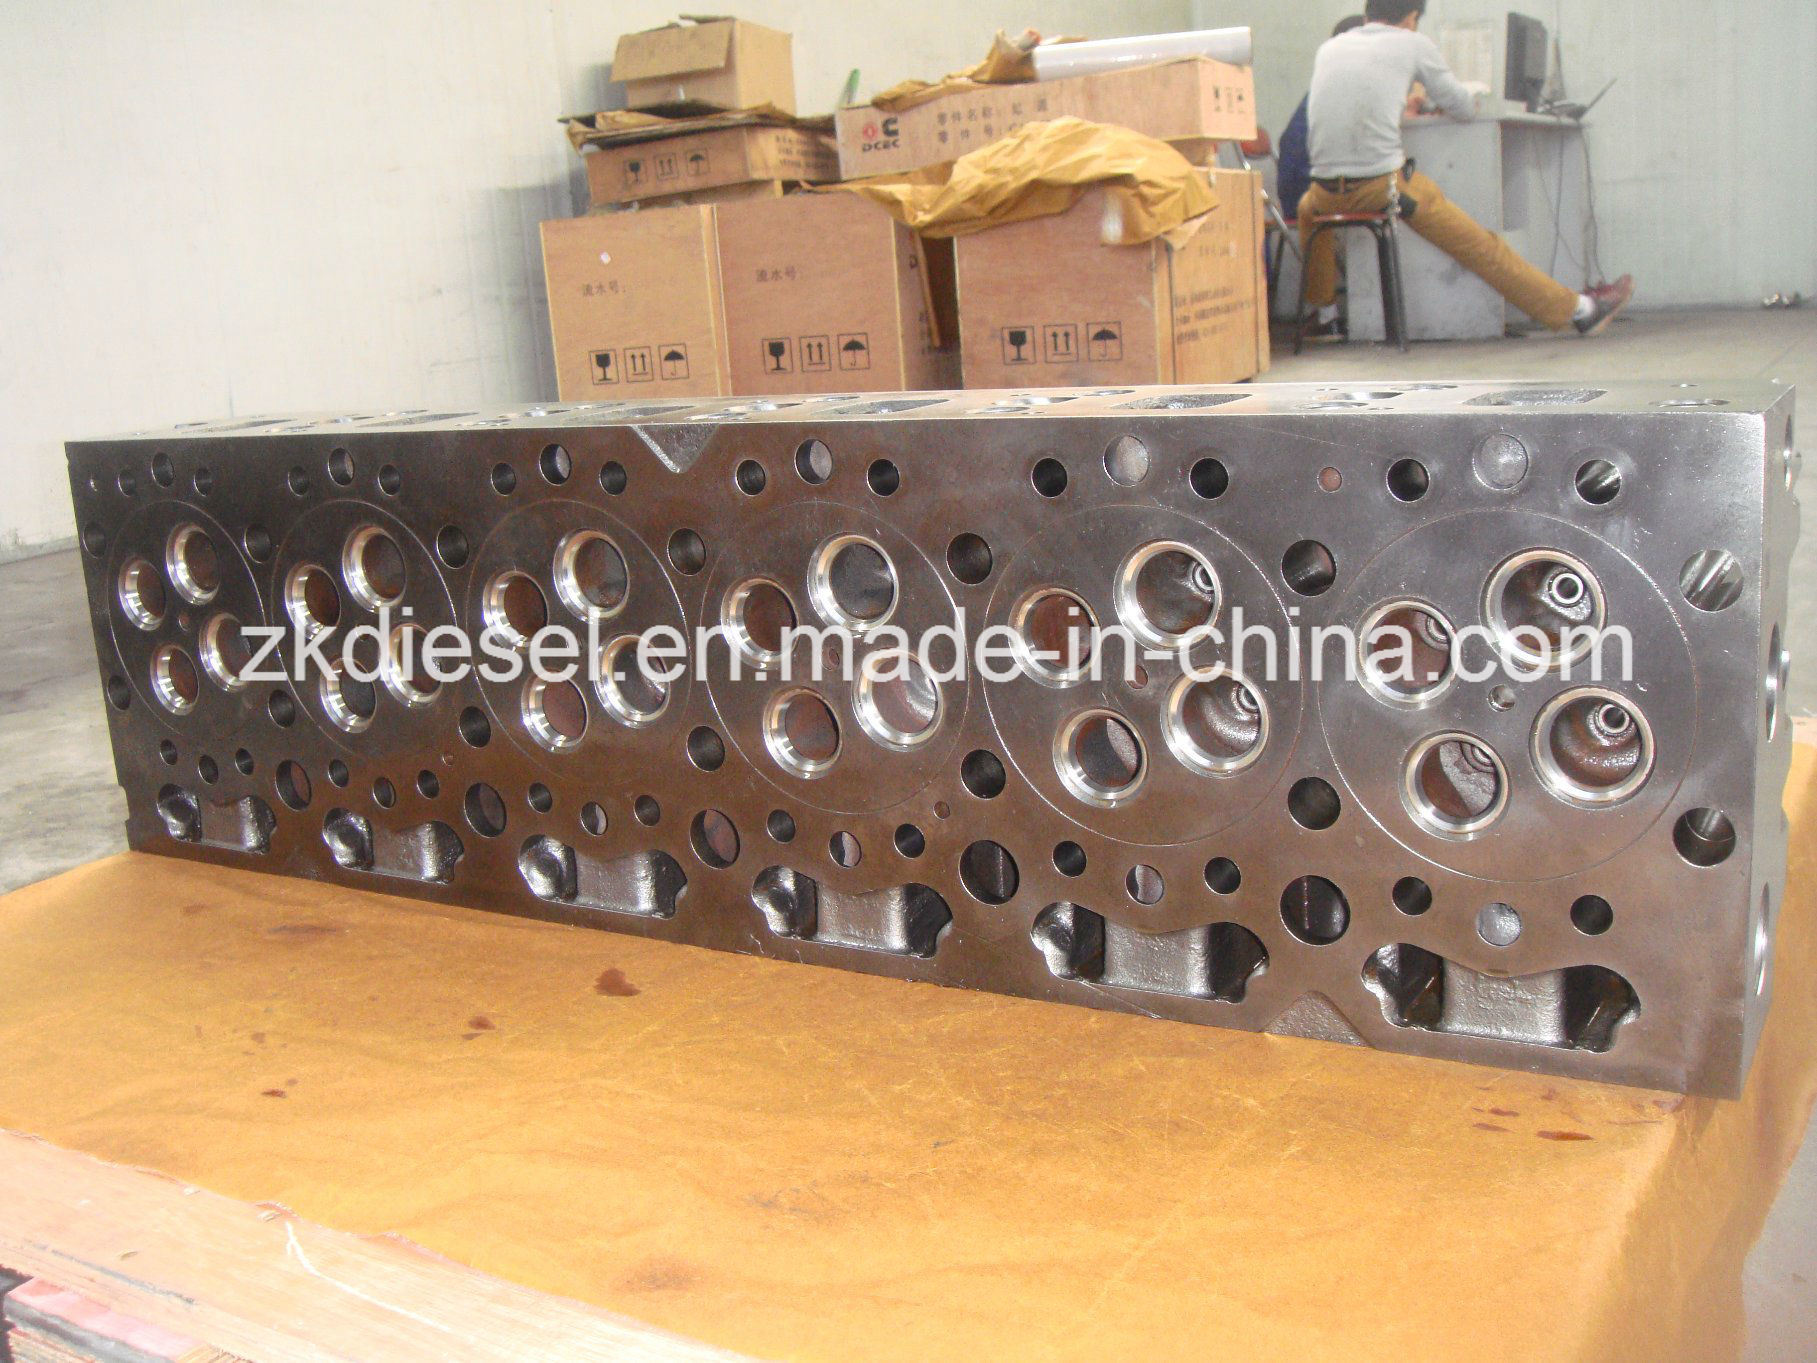 China Supplier for Dongfeng Renault Engine Dci11 Cylinder Head D5010550544/D5010222989/D5010222980